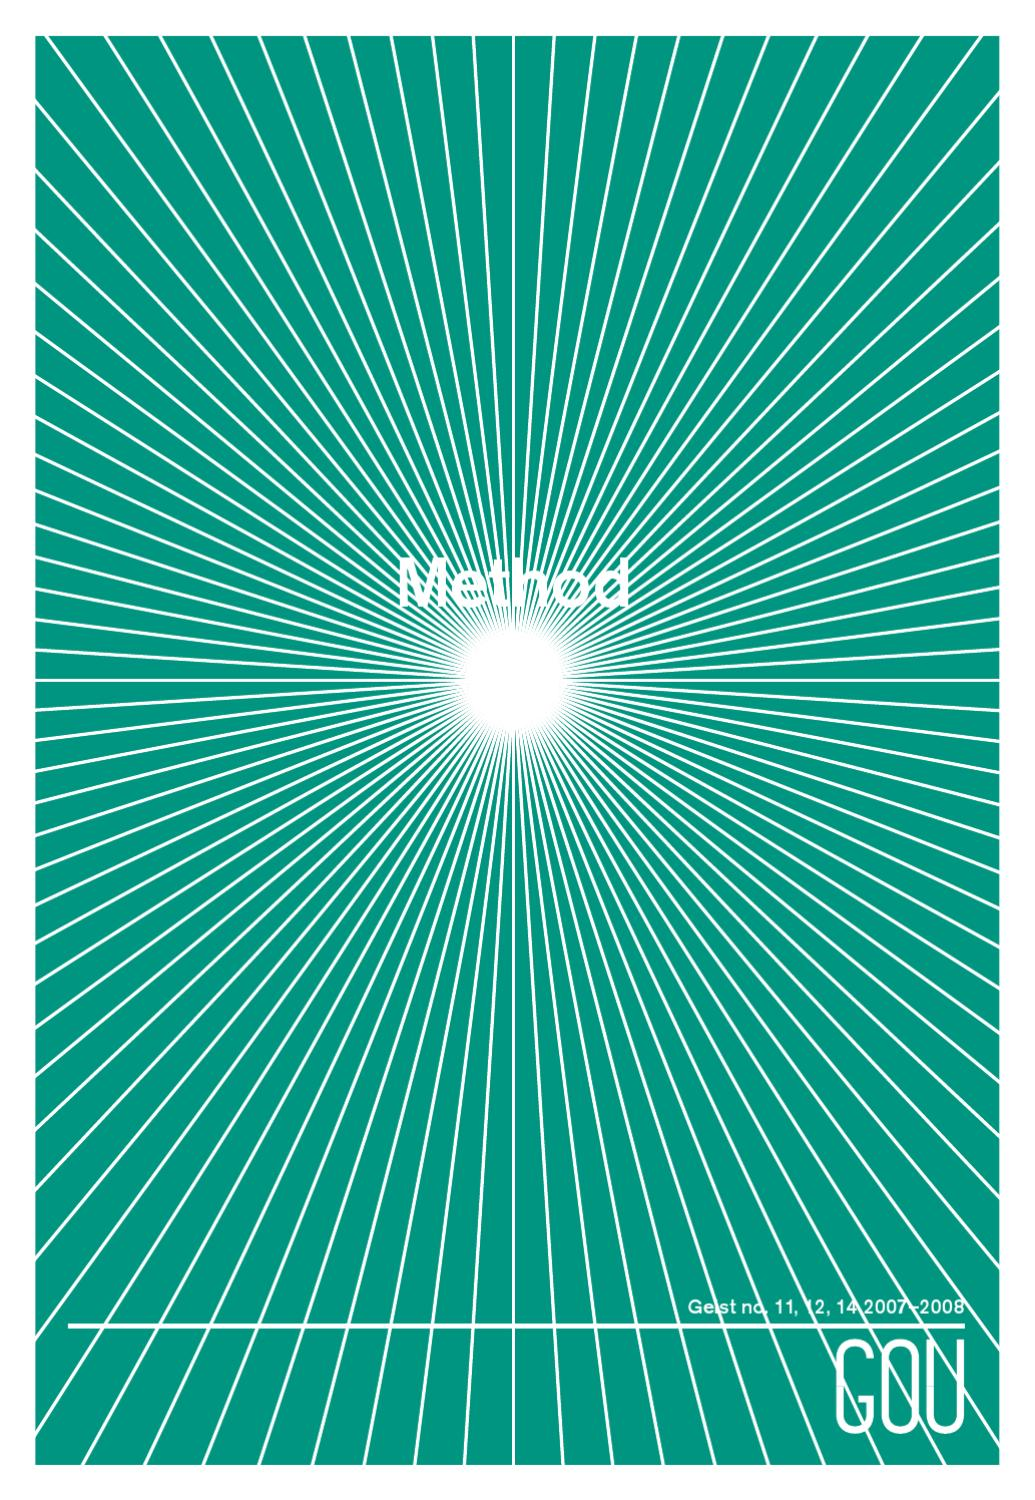 Gou 1 Method By Geist Magazine Issuu